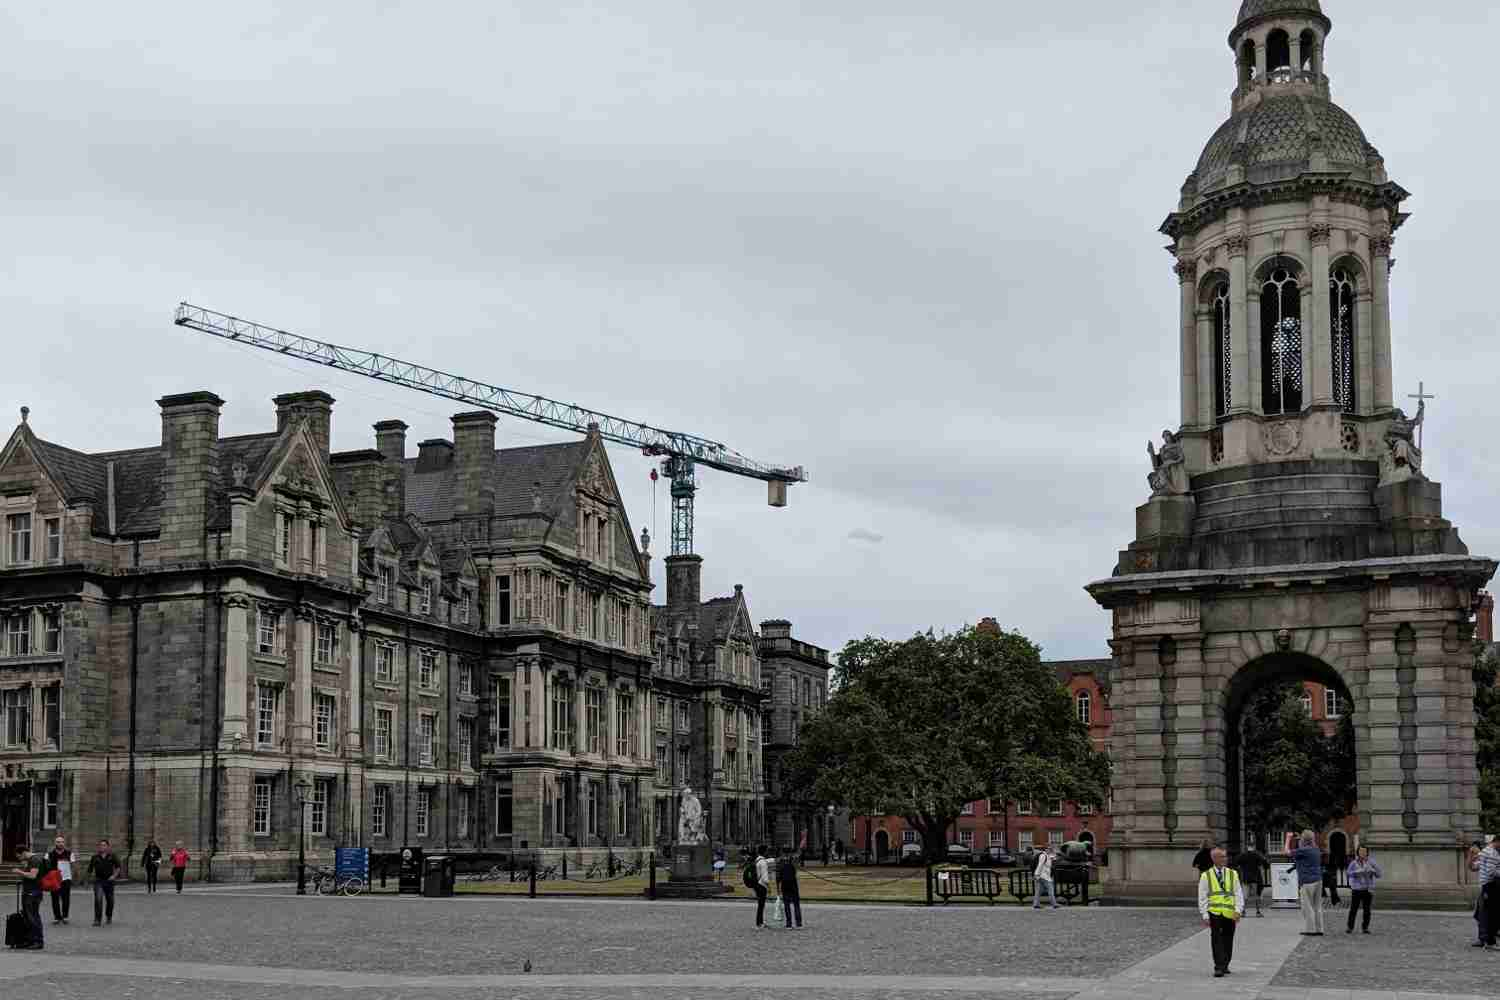 Trinity College is open to guests.